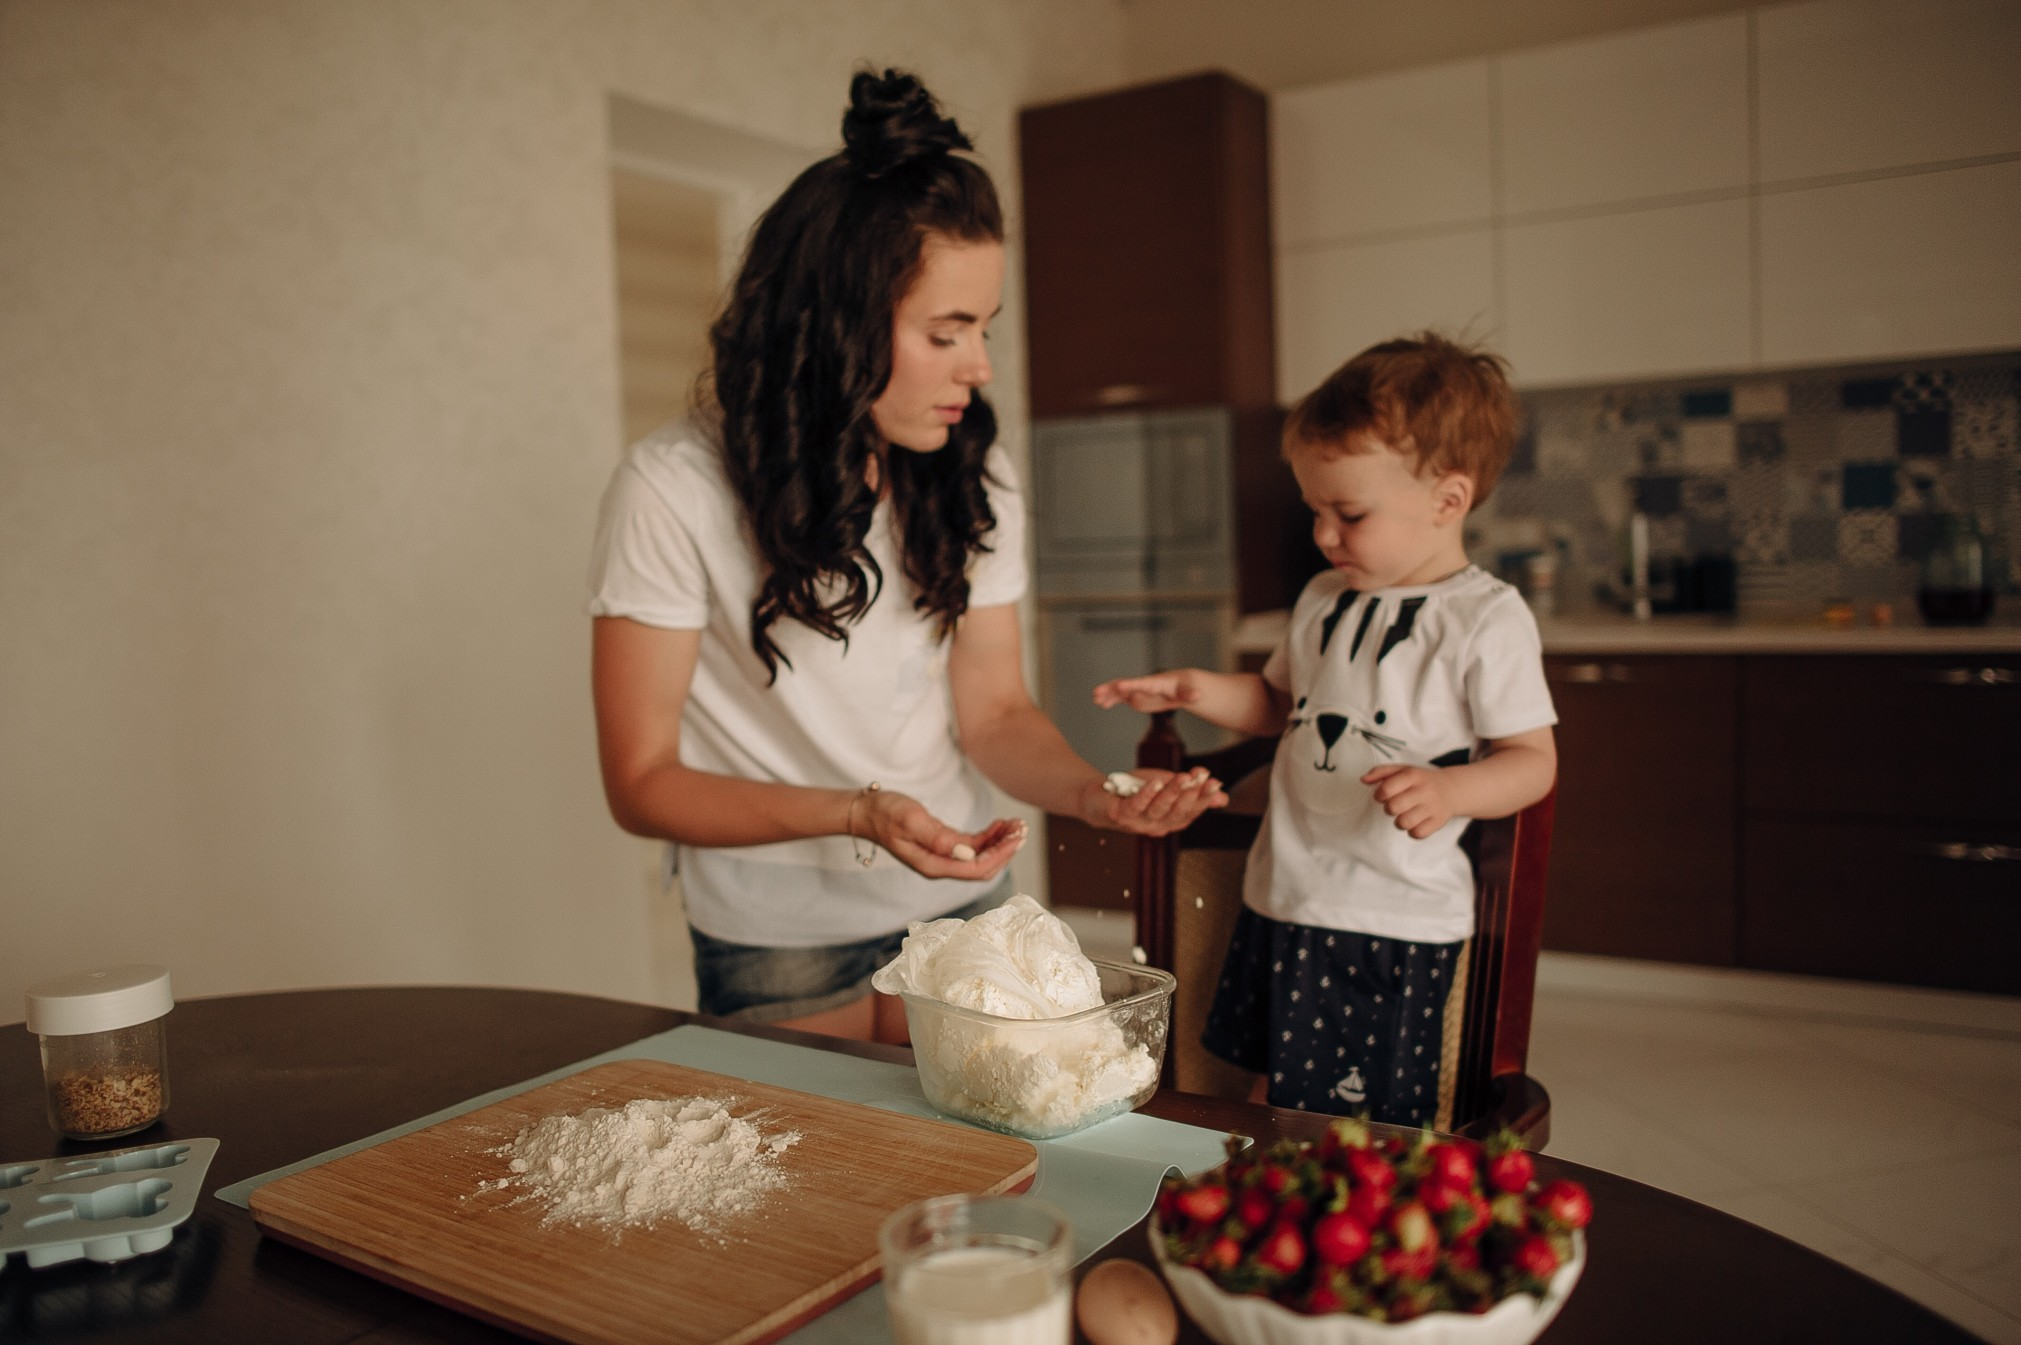 Cooking at home with strawberries